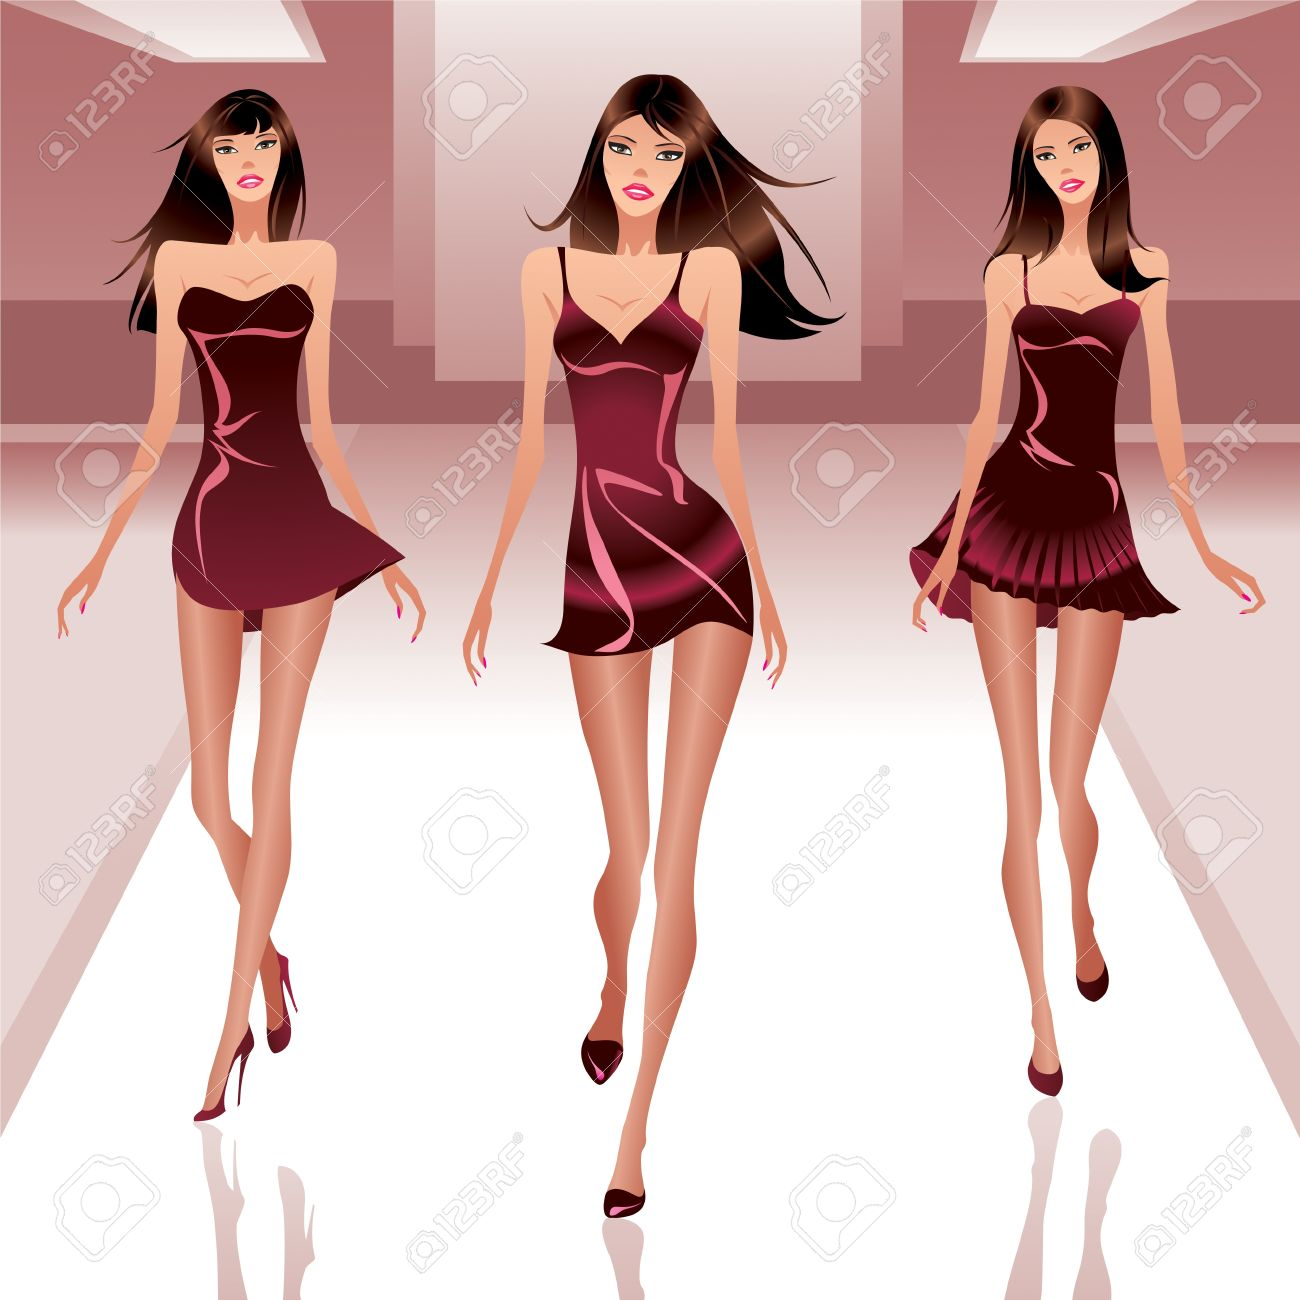 Fashion models on catwalk illustration Stock Vector - 14248668